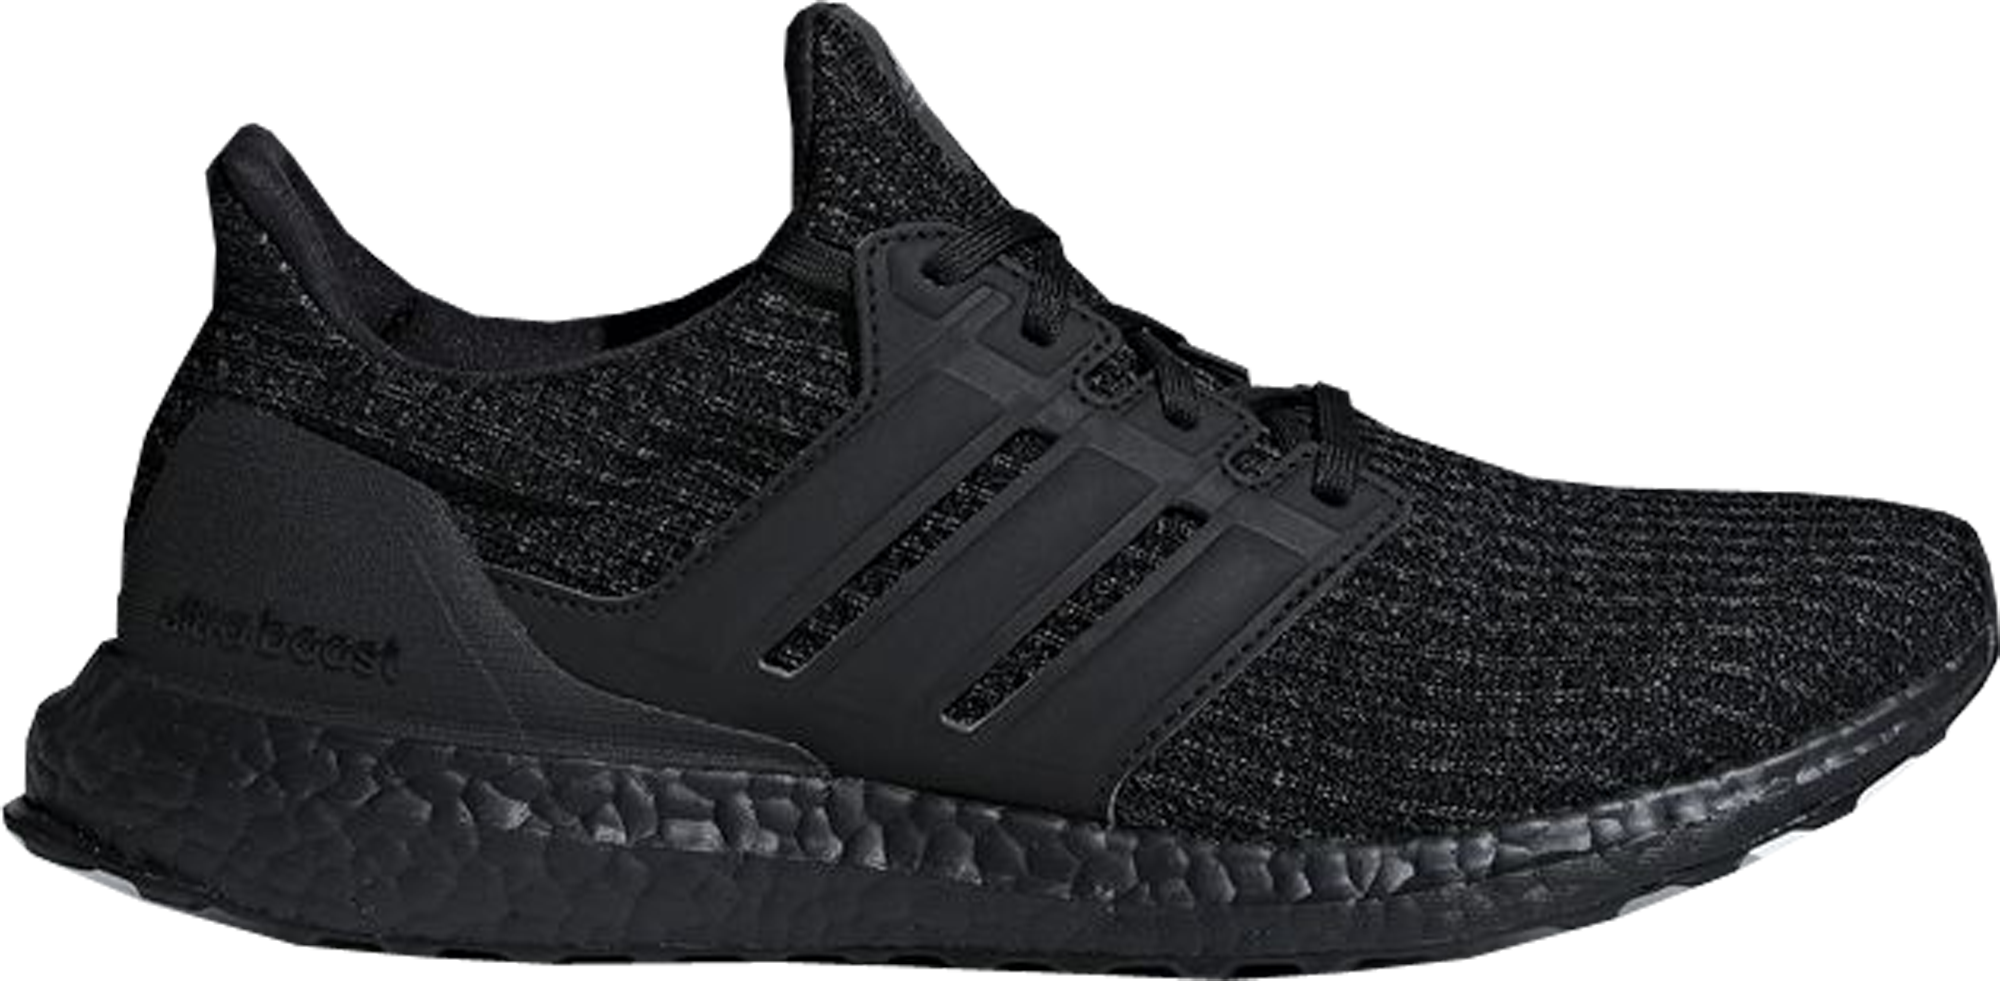 adidas Ultra Boost 4.0 Triple Black Nubuck Cage